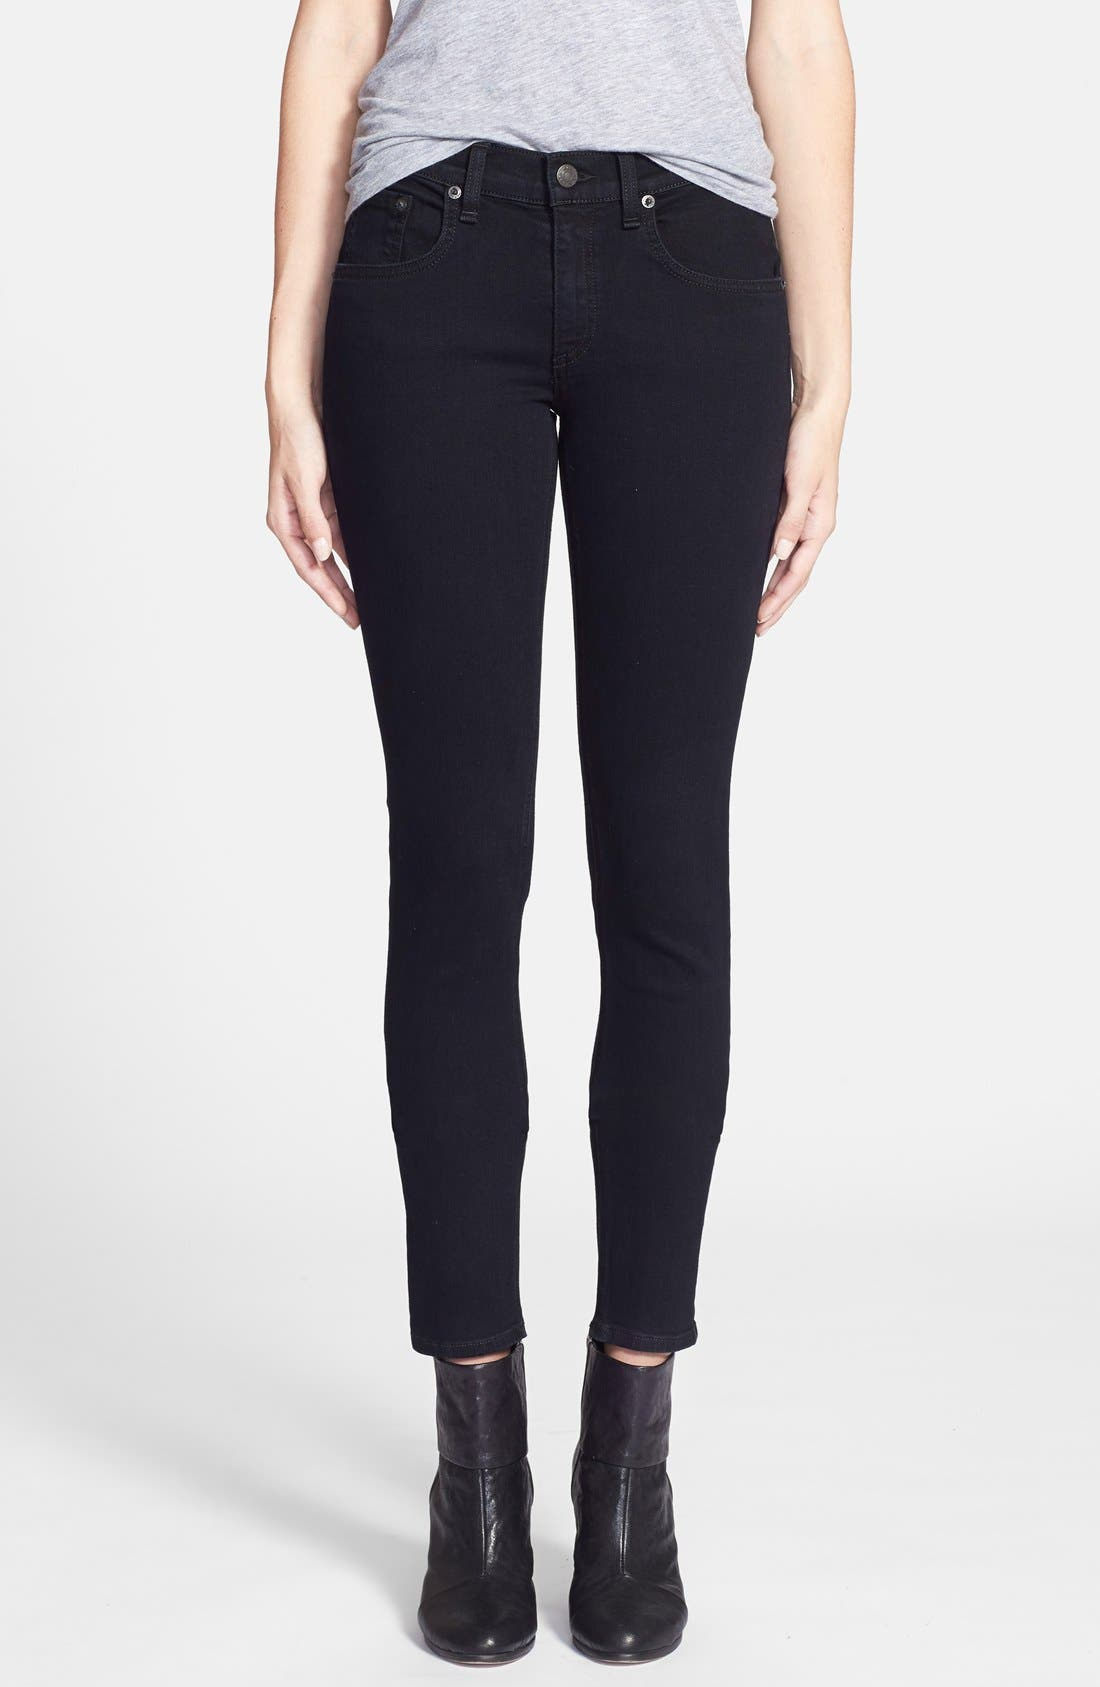 'The Skinny' Stretch Jeans,                         Main,                         color, Coal